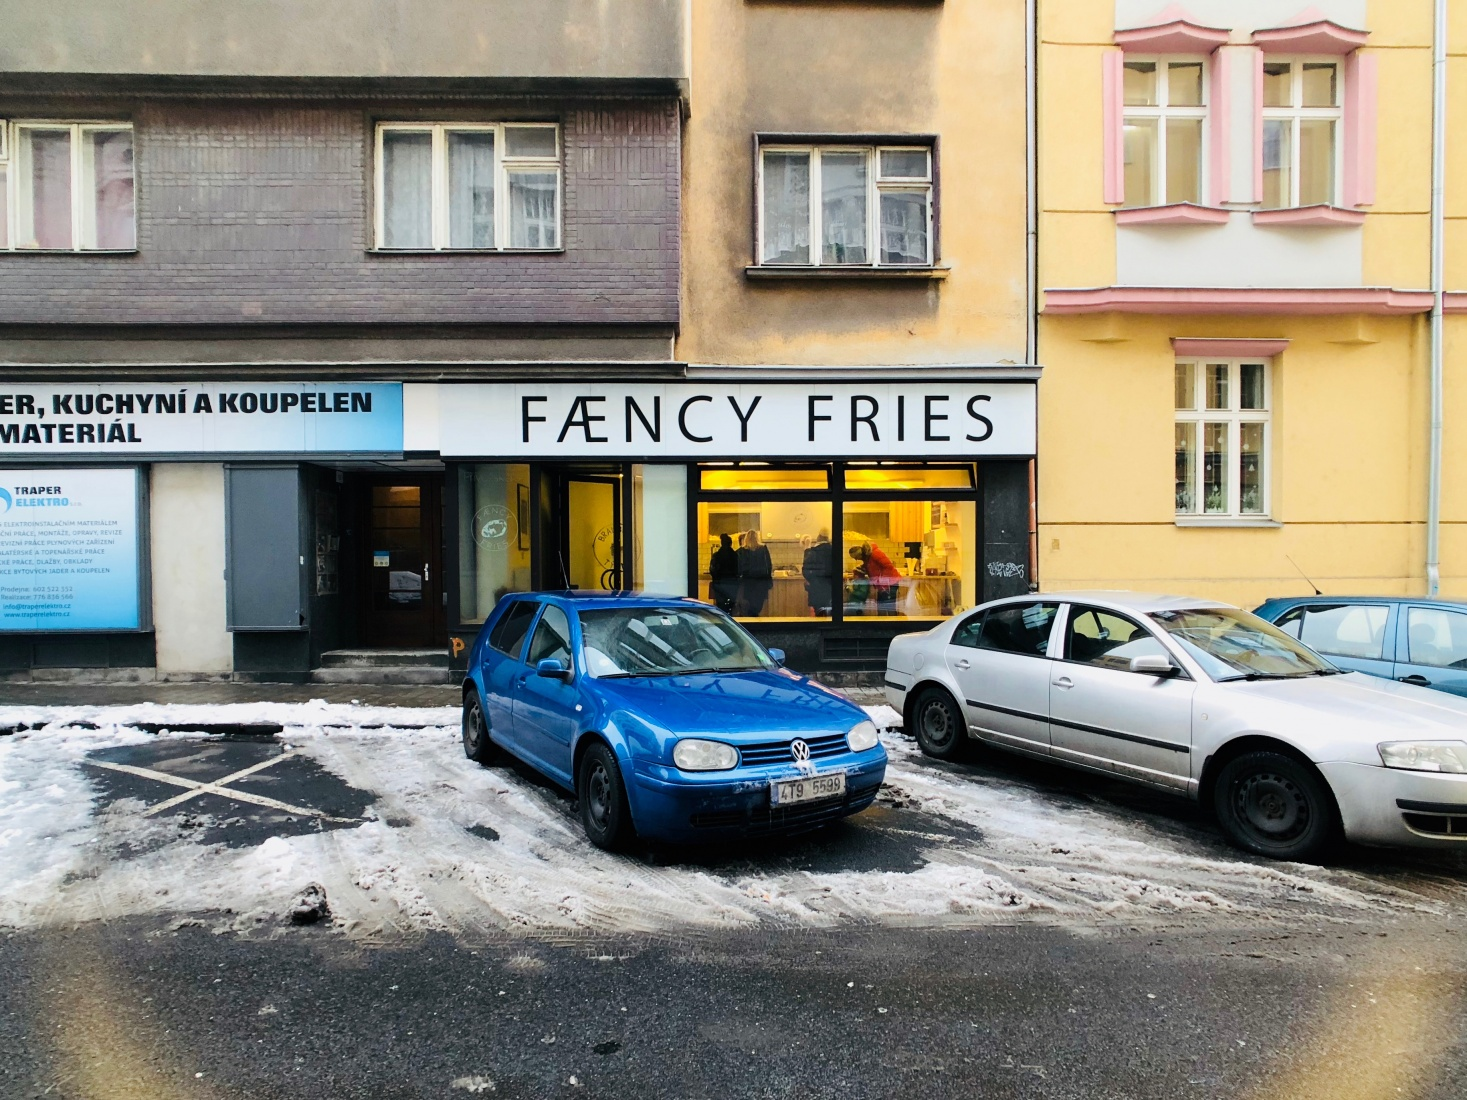 Renowned street food option at Faency Fries, where they serve Belgian fries, a short walk from the center of Ostrava, Czech Republic.